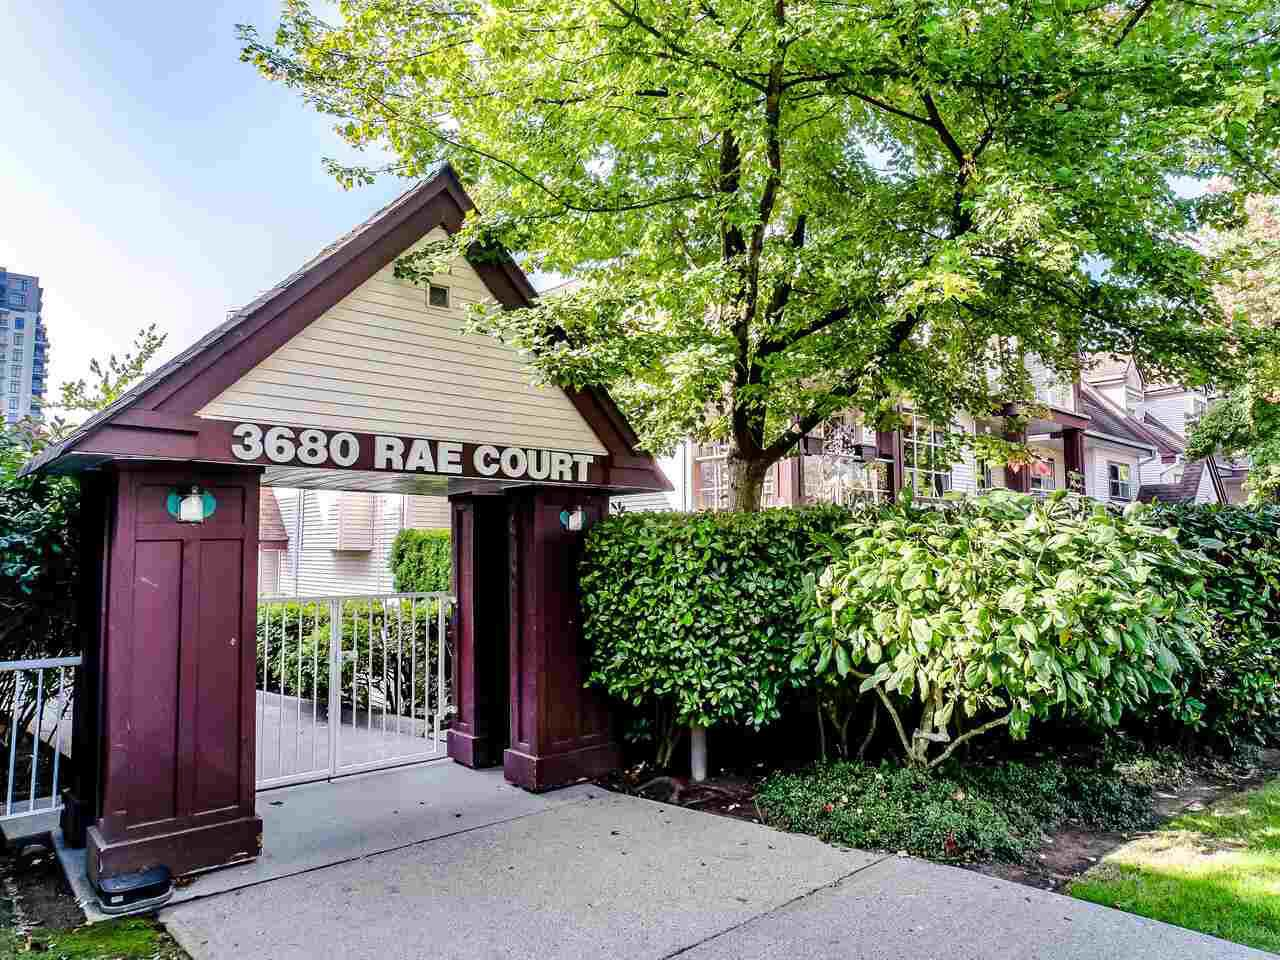 """Main Photo: 202 3680 RAE Avenue in Vancouver: Collingwood VE Condo for sale in """"RAE COURT"""" (Vancouver East)  : MLS®# R2506531"""